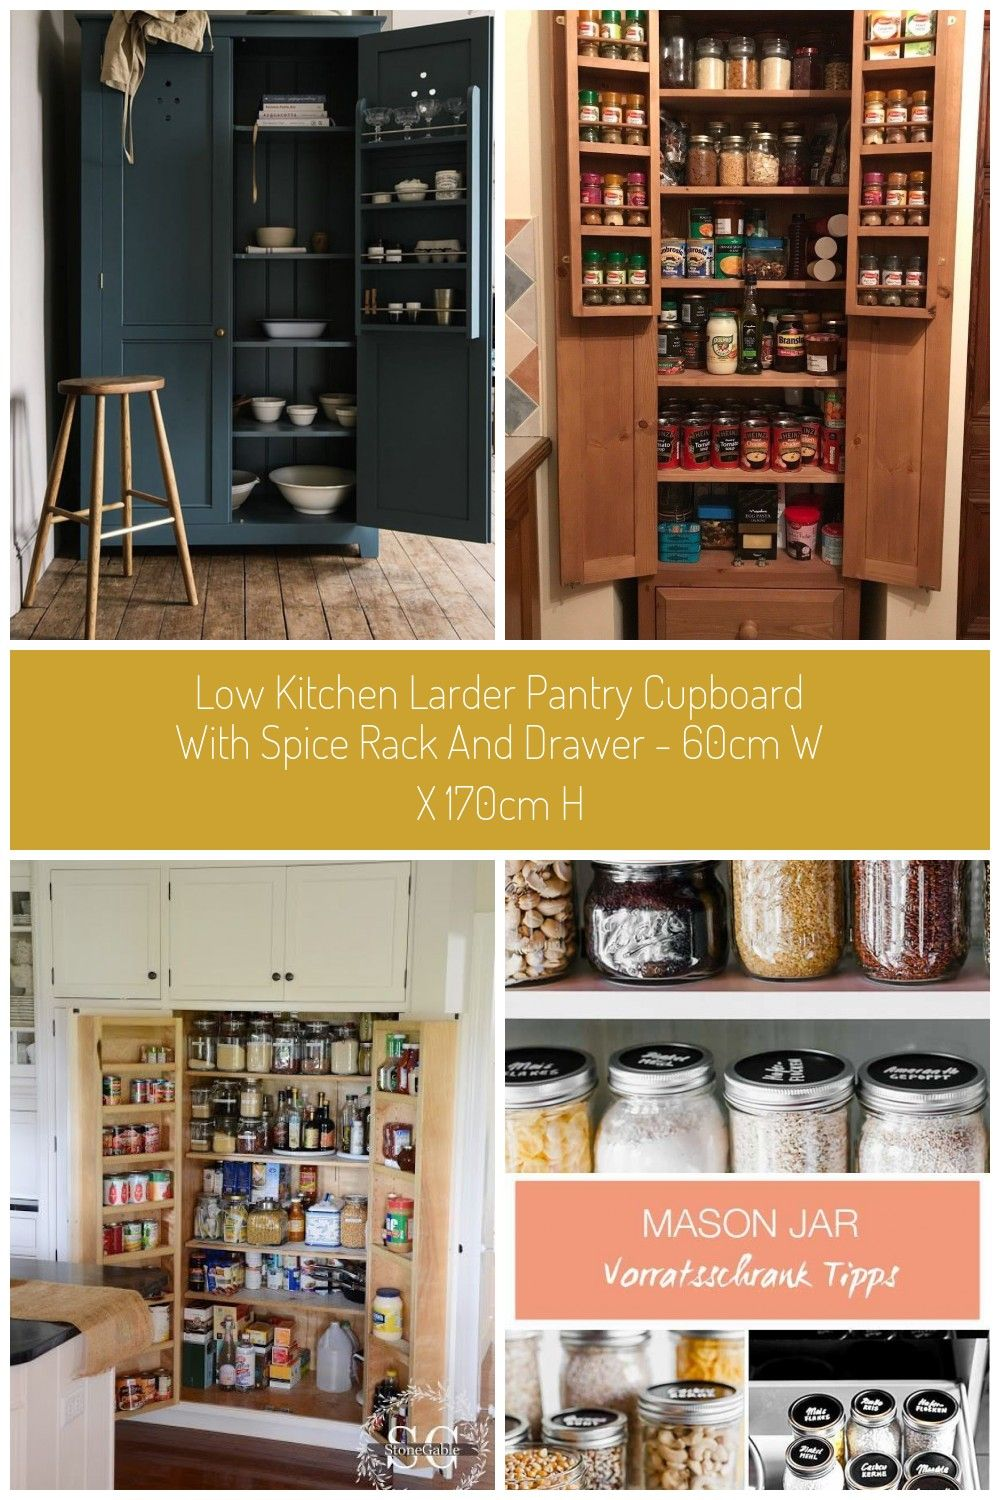 Freestanding Full Height Pantry Cupboardlow Larder Utility Room Storage Cabinet With Spice Racks And Drawer 40 Cm Deep Maximum Sizes For This Item Are 170cm Hig